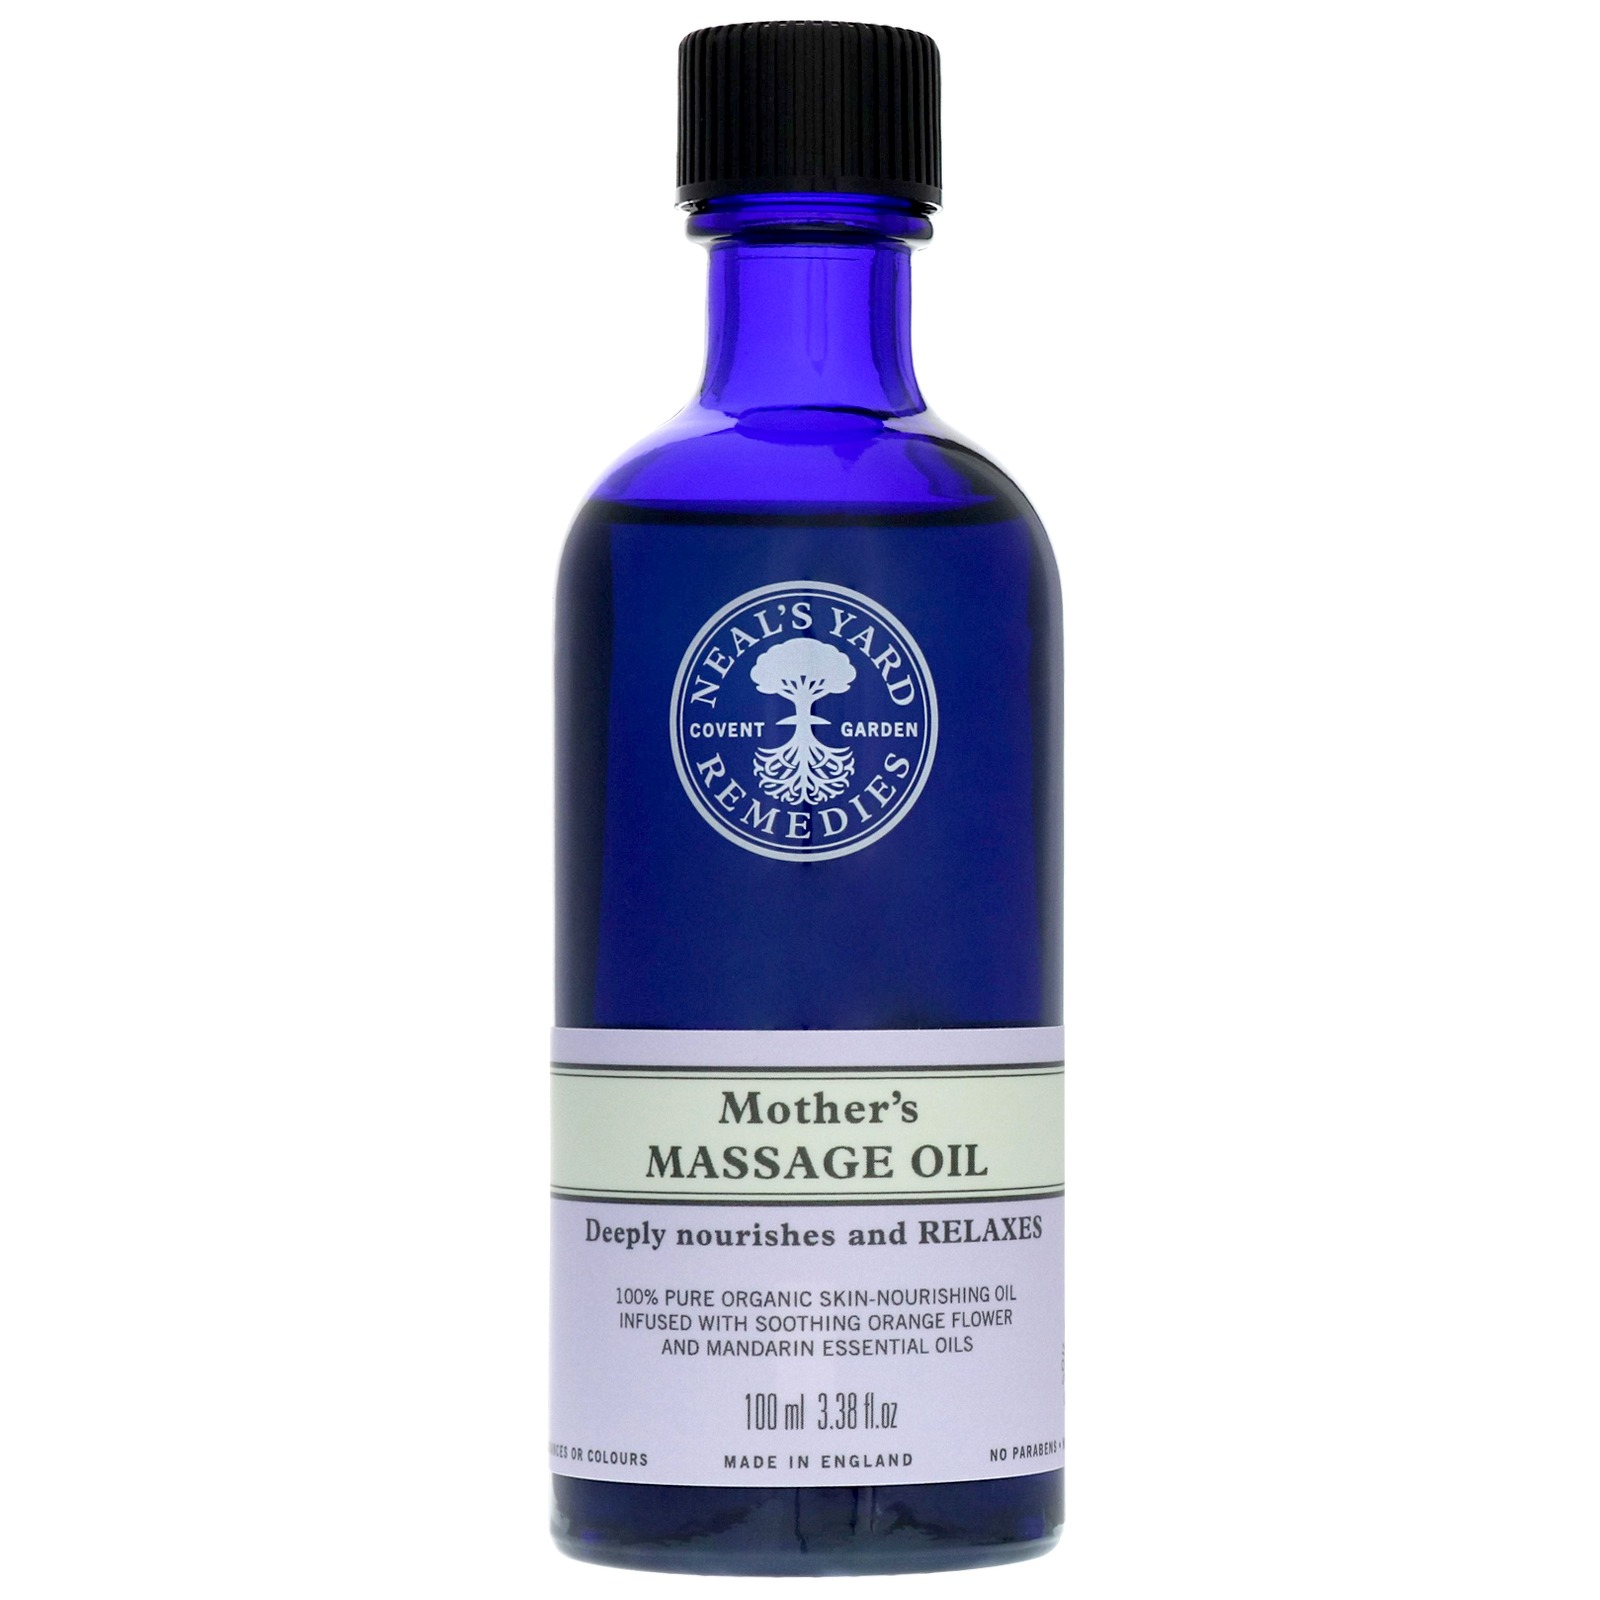 Neal's Yard Remedies Caring For Mum Mother's Massage Oil 100ml